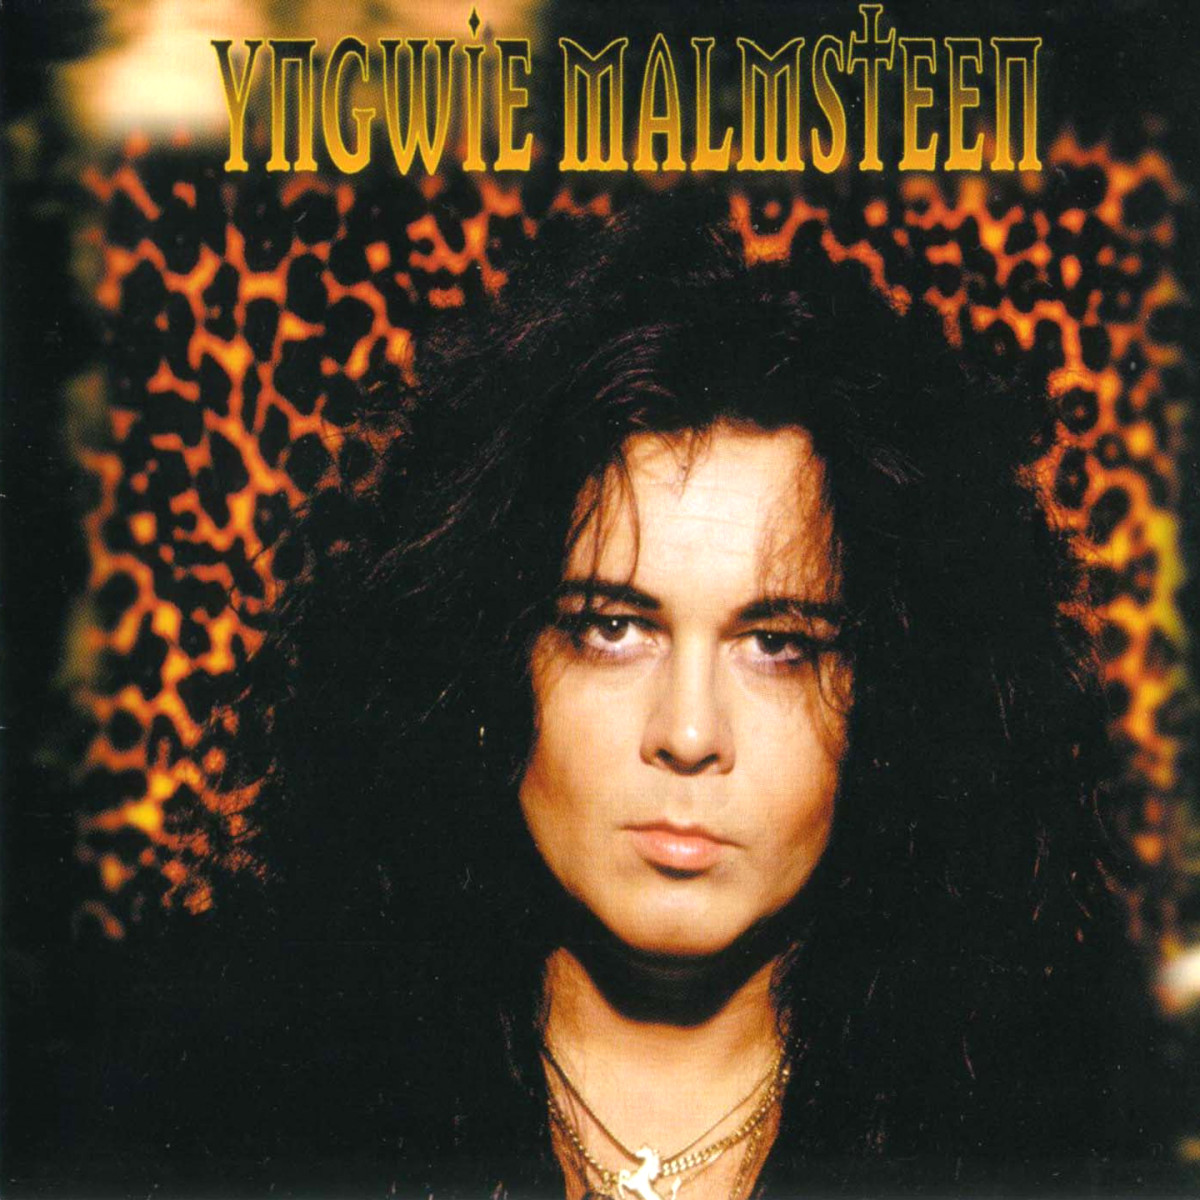 """Yngwie J. Malmsteen: """"Facing the Animal"""" Album Review and Commentary"""